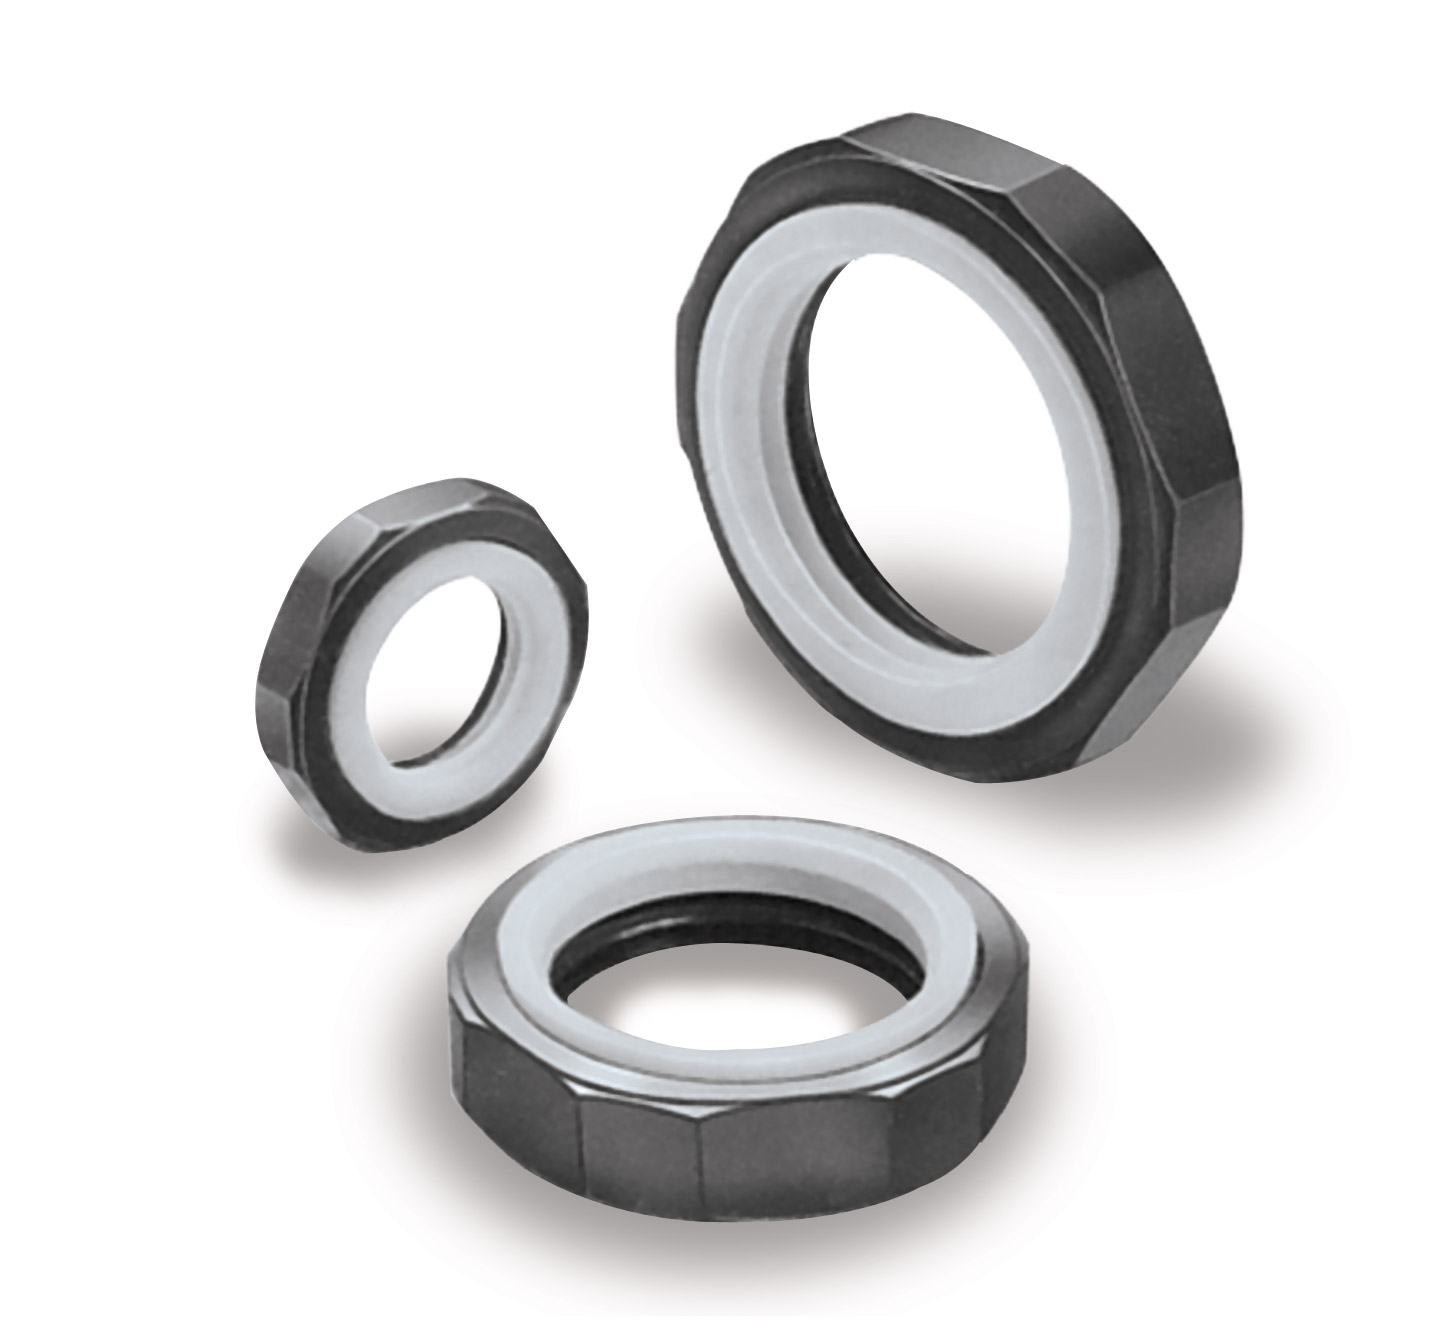 Miller Tru-Seal Pipe Thread Sealing Nuts